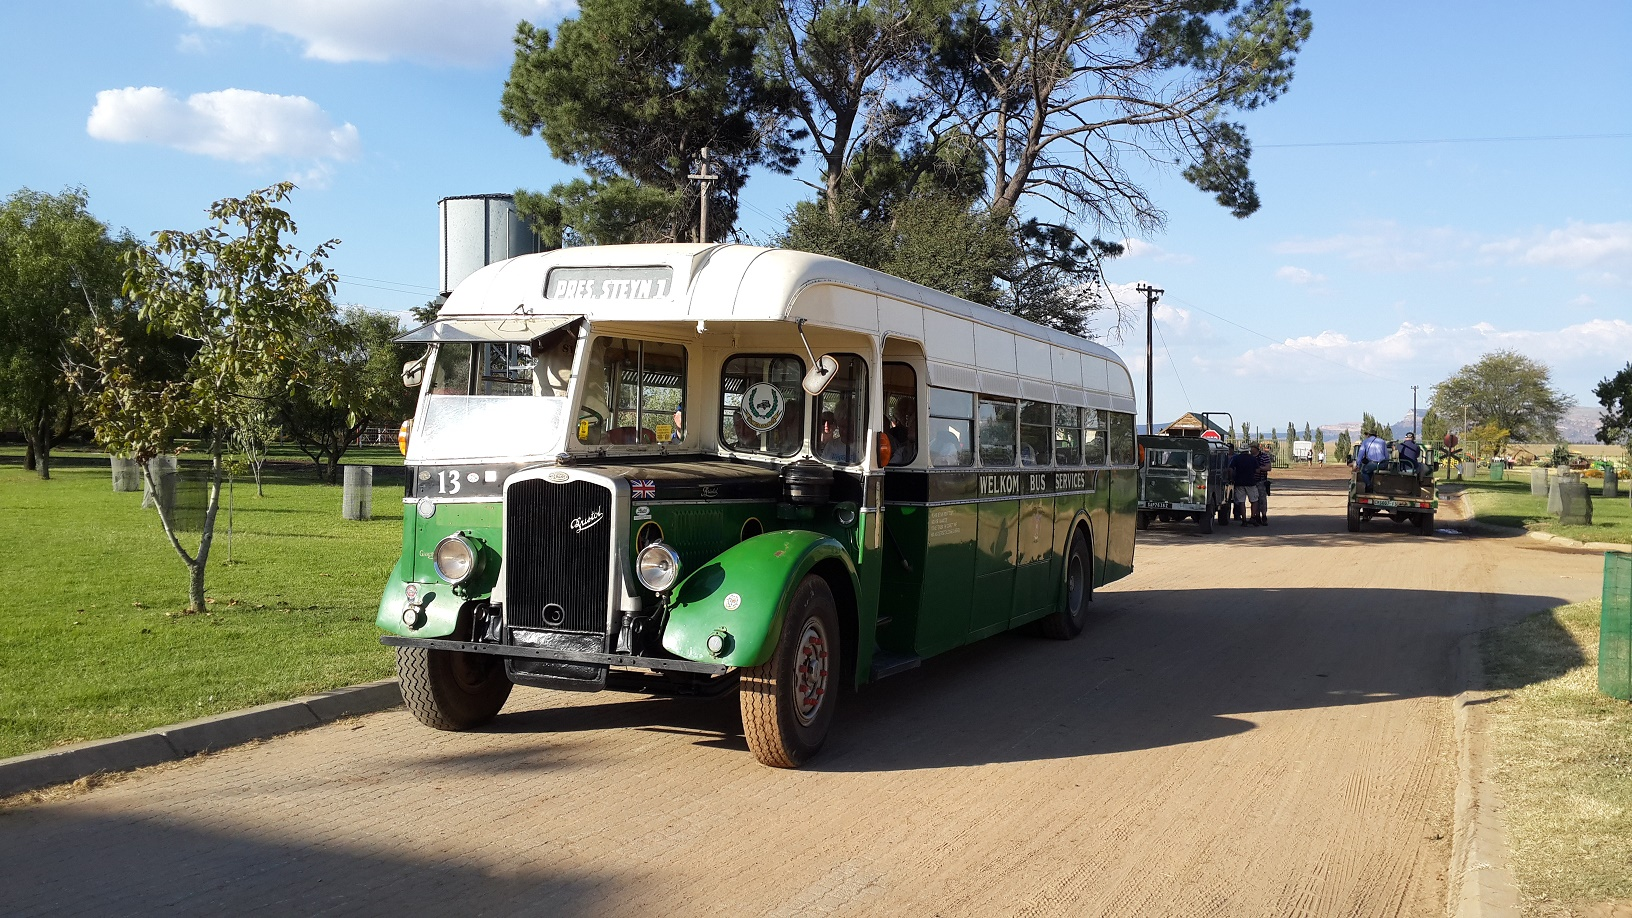 Sandstone's 1954 Bristol bus, ready for the off! Picture by Dave Richardson